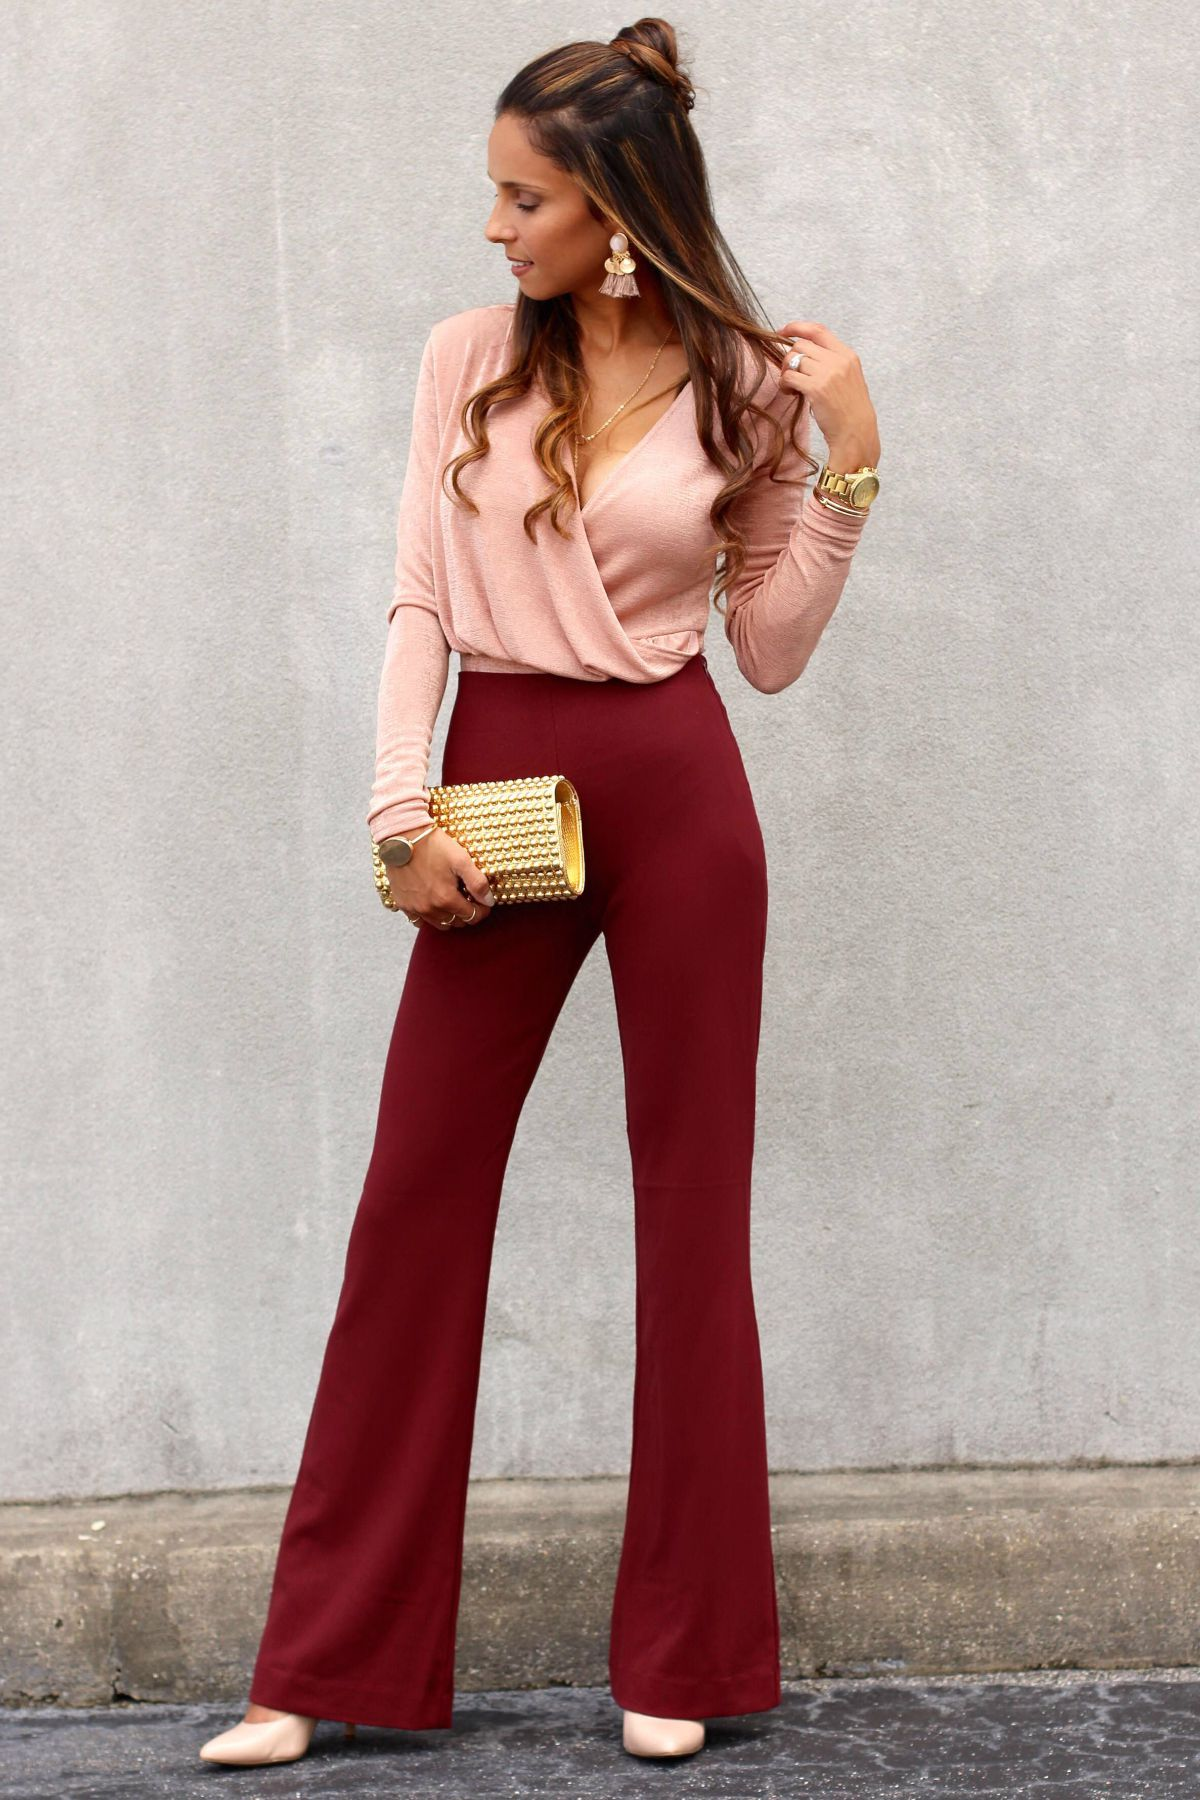 blush bodysuit paired with burgundy high-waist pants